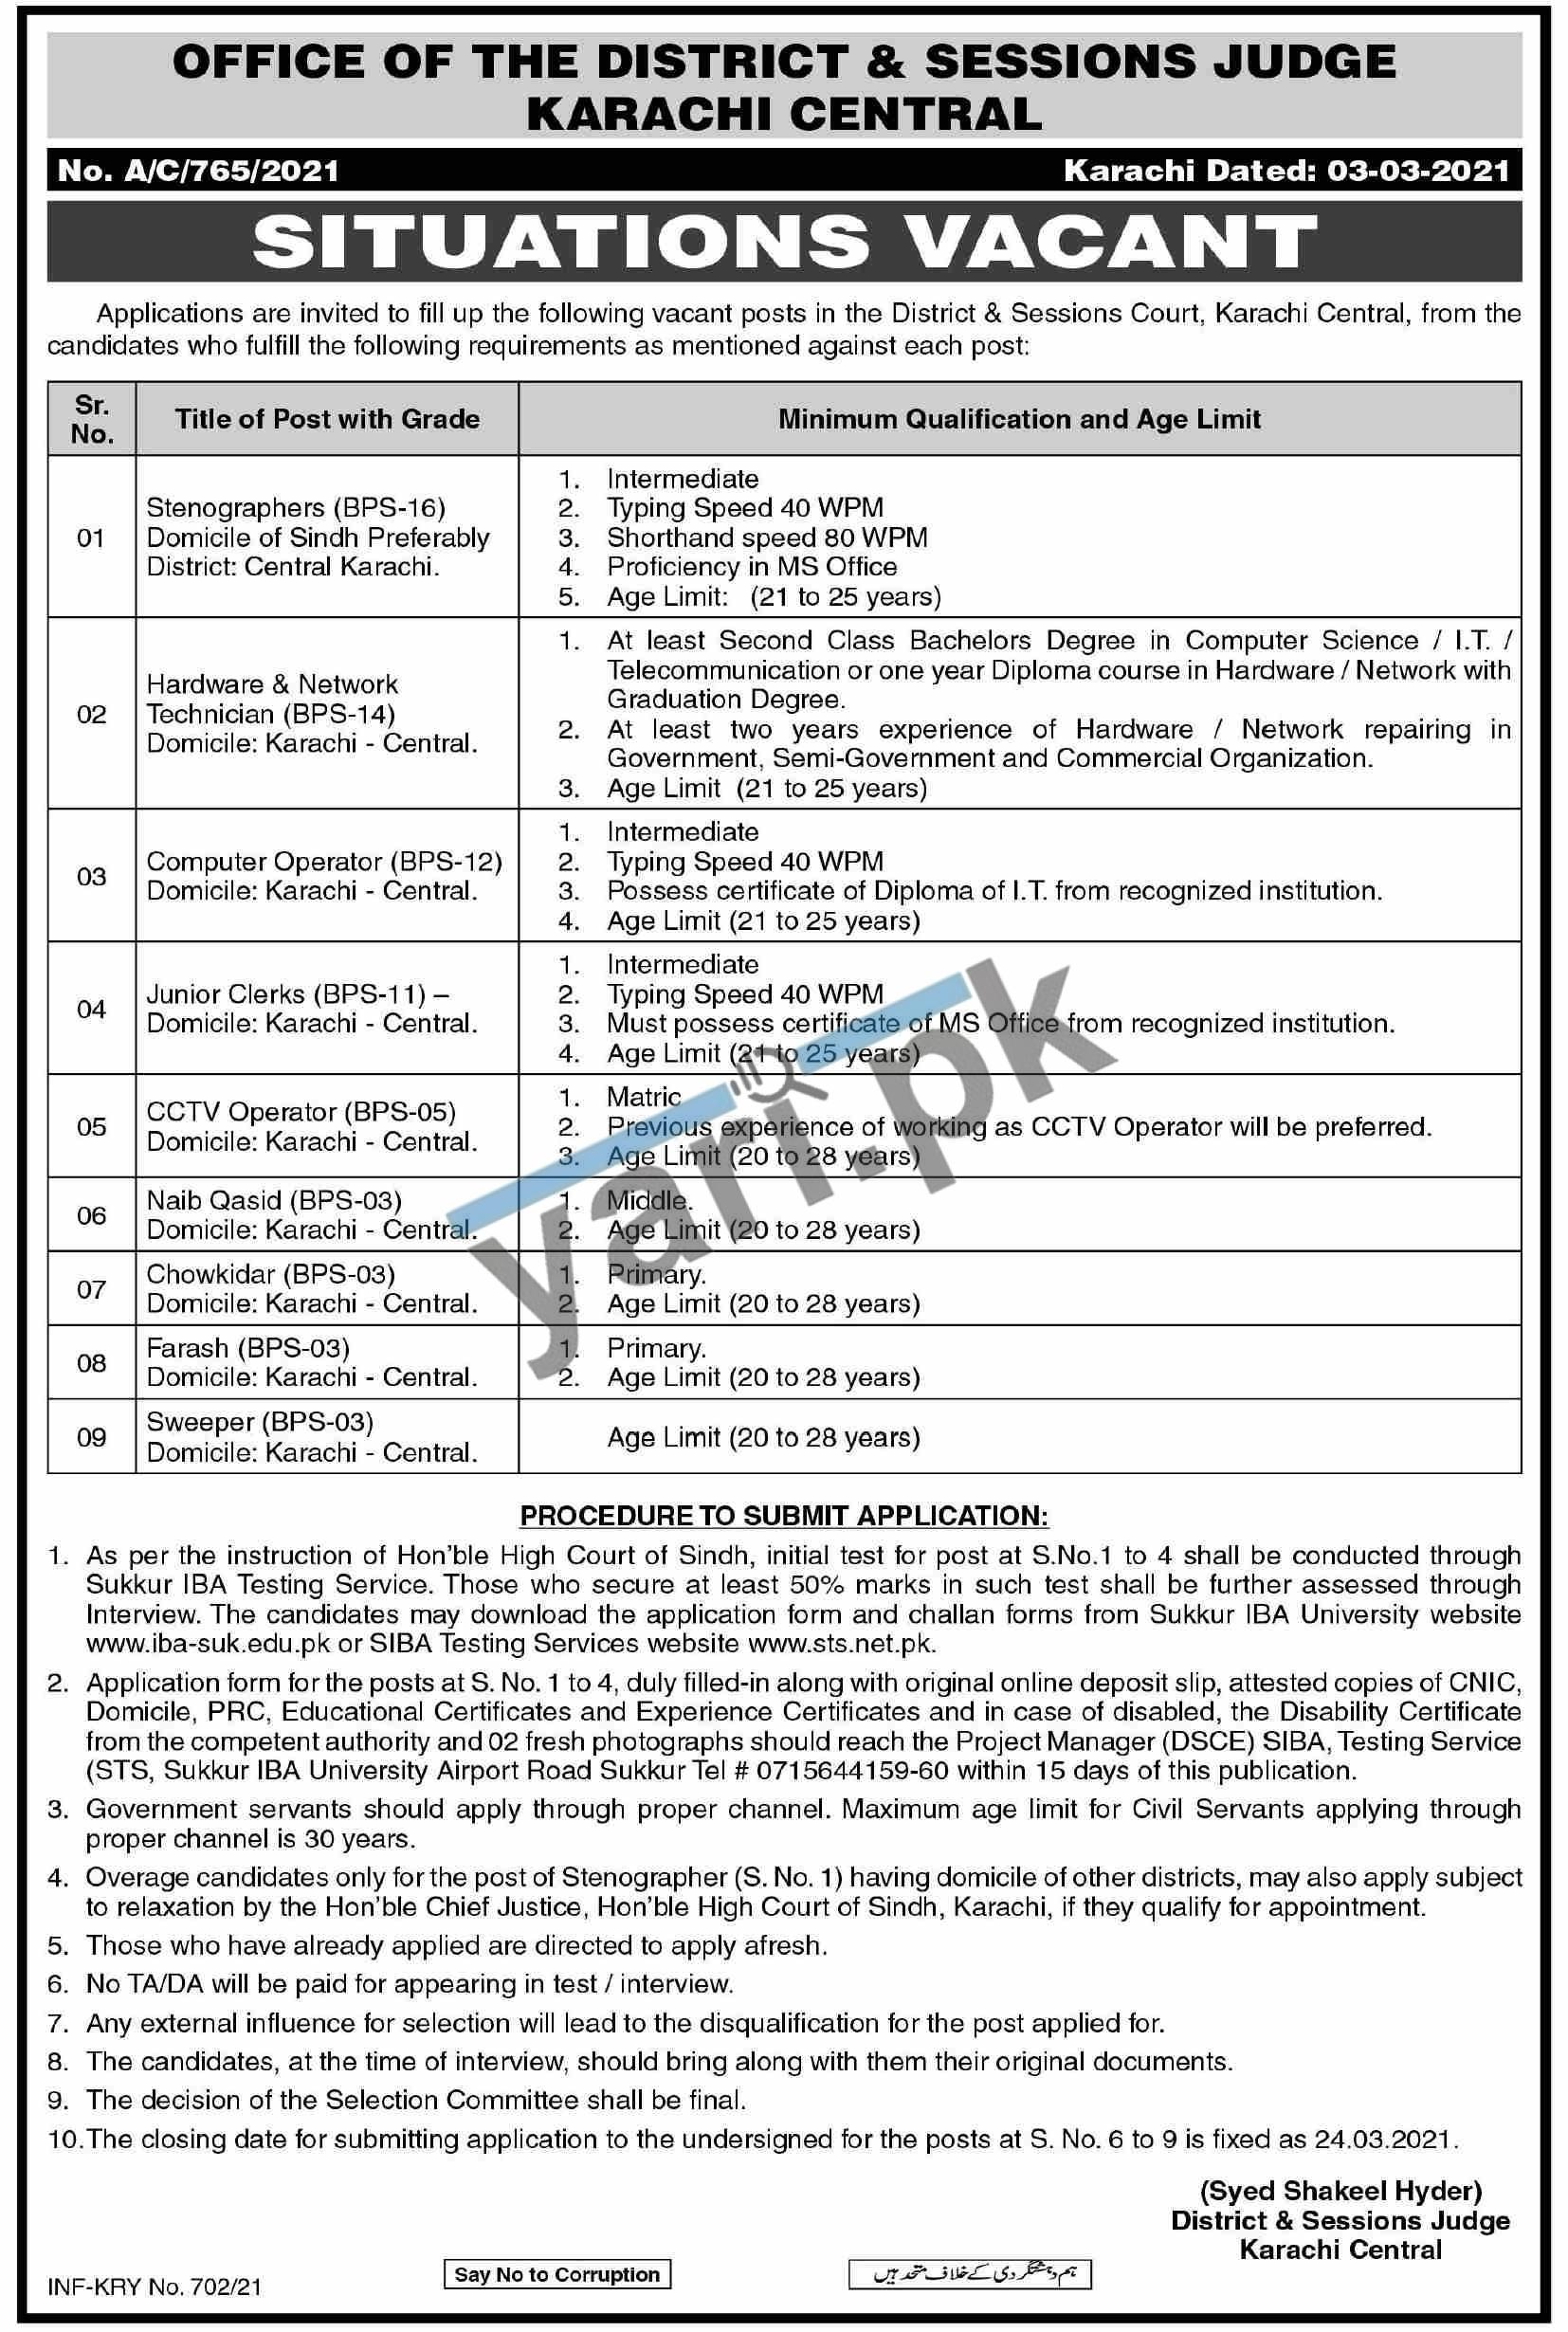 CCTV Operator Jobs in District